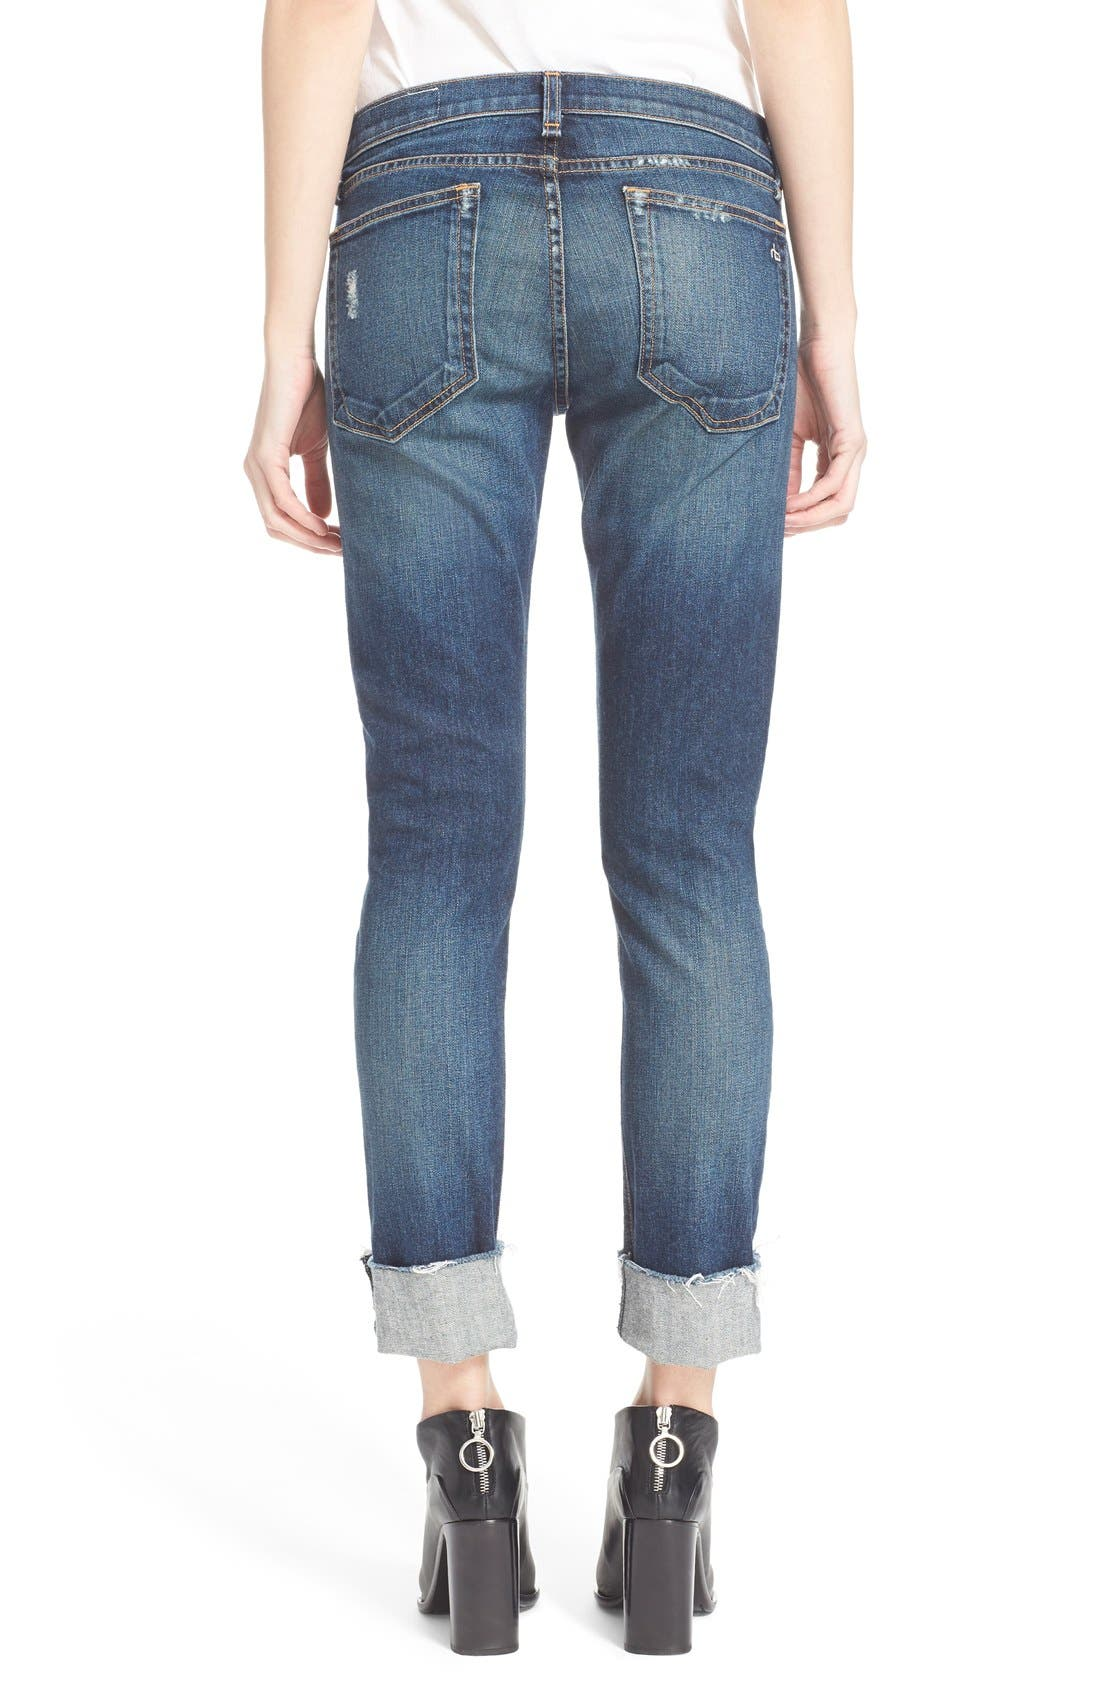 Alternate Image 3  - rag & bone/JEAN 'The Dre' Slim Fit Boyfriend Jeans (Mabel)